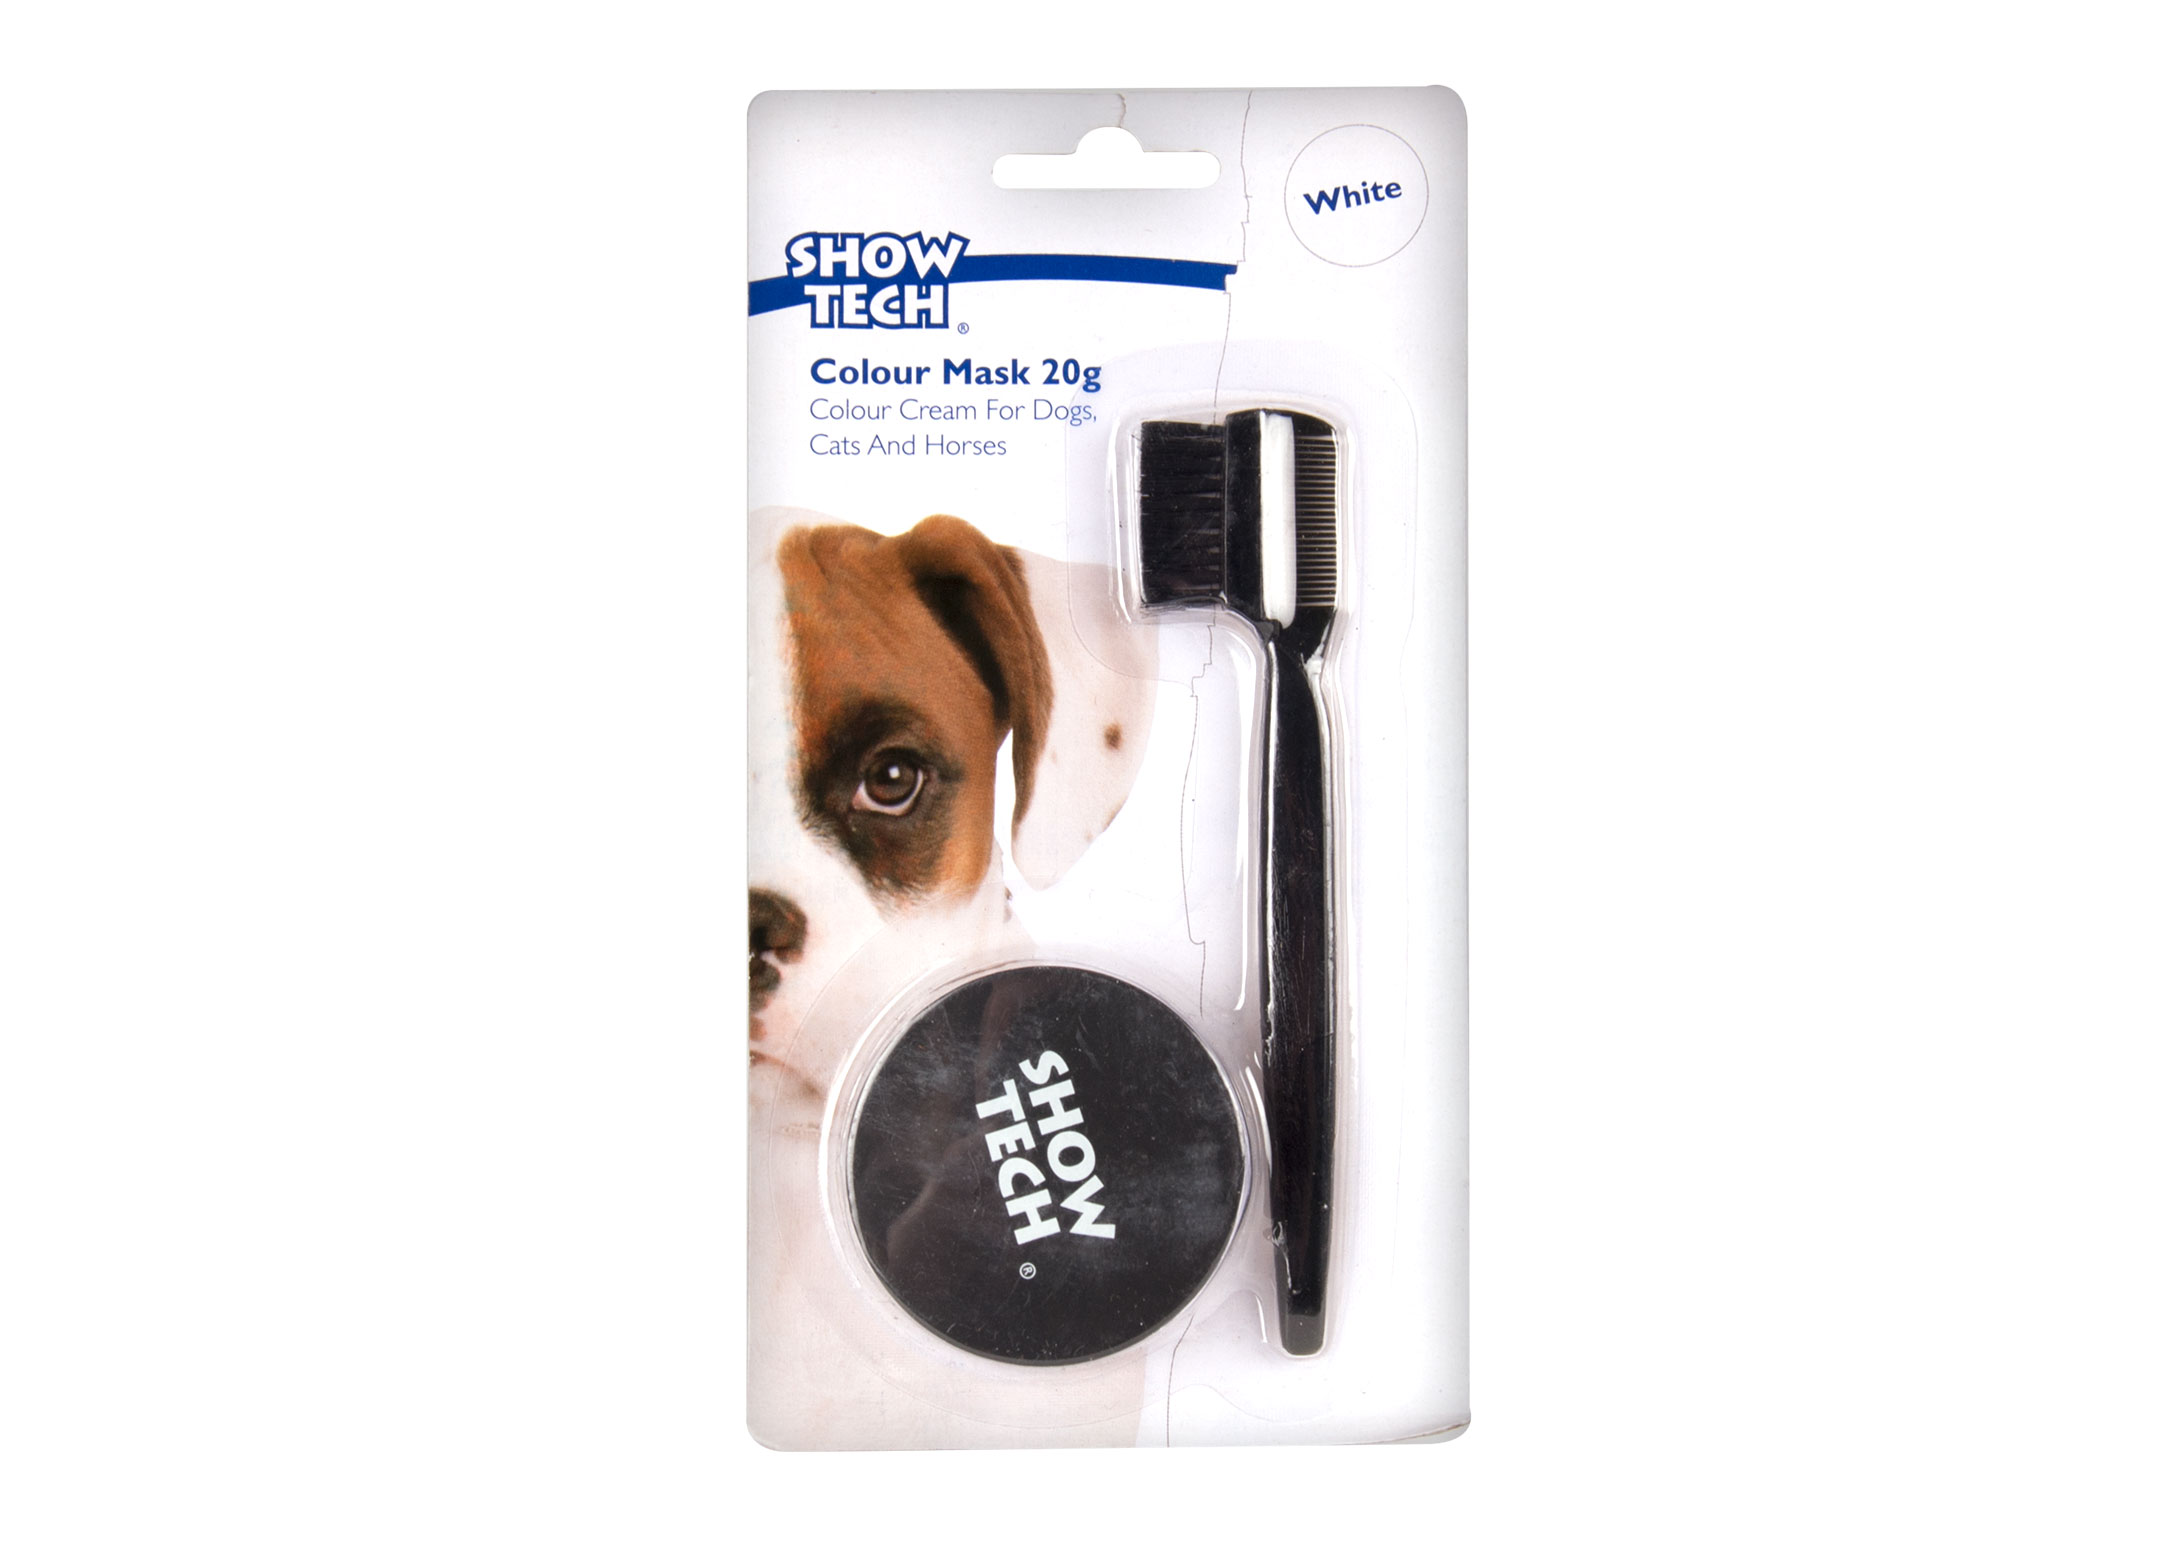 Show Tech Colour Mask 20g Colour Cream For Dogs, Cats And Horses